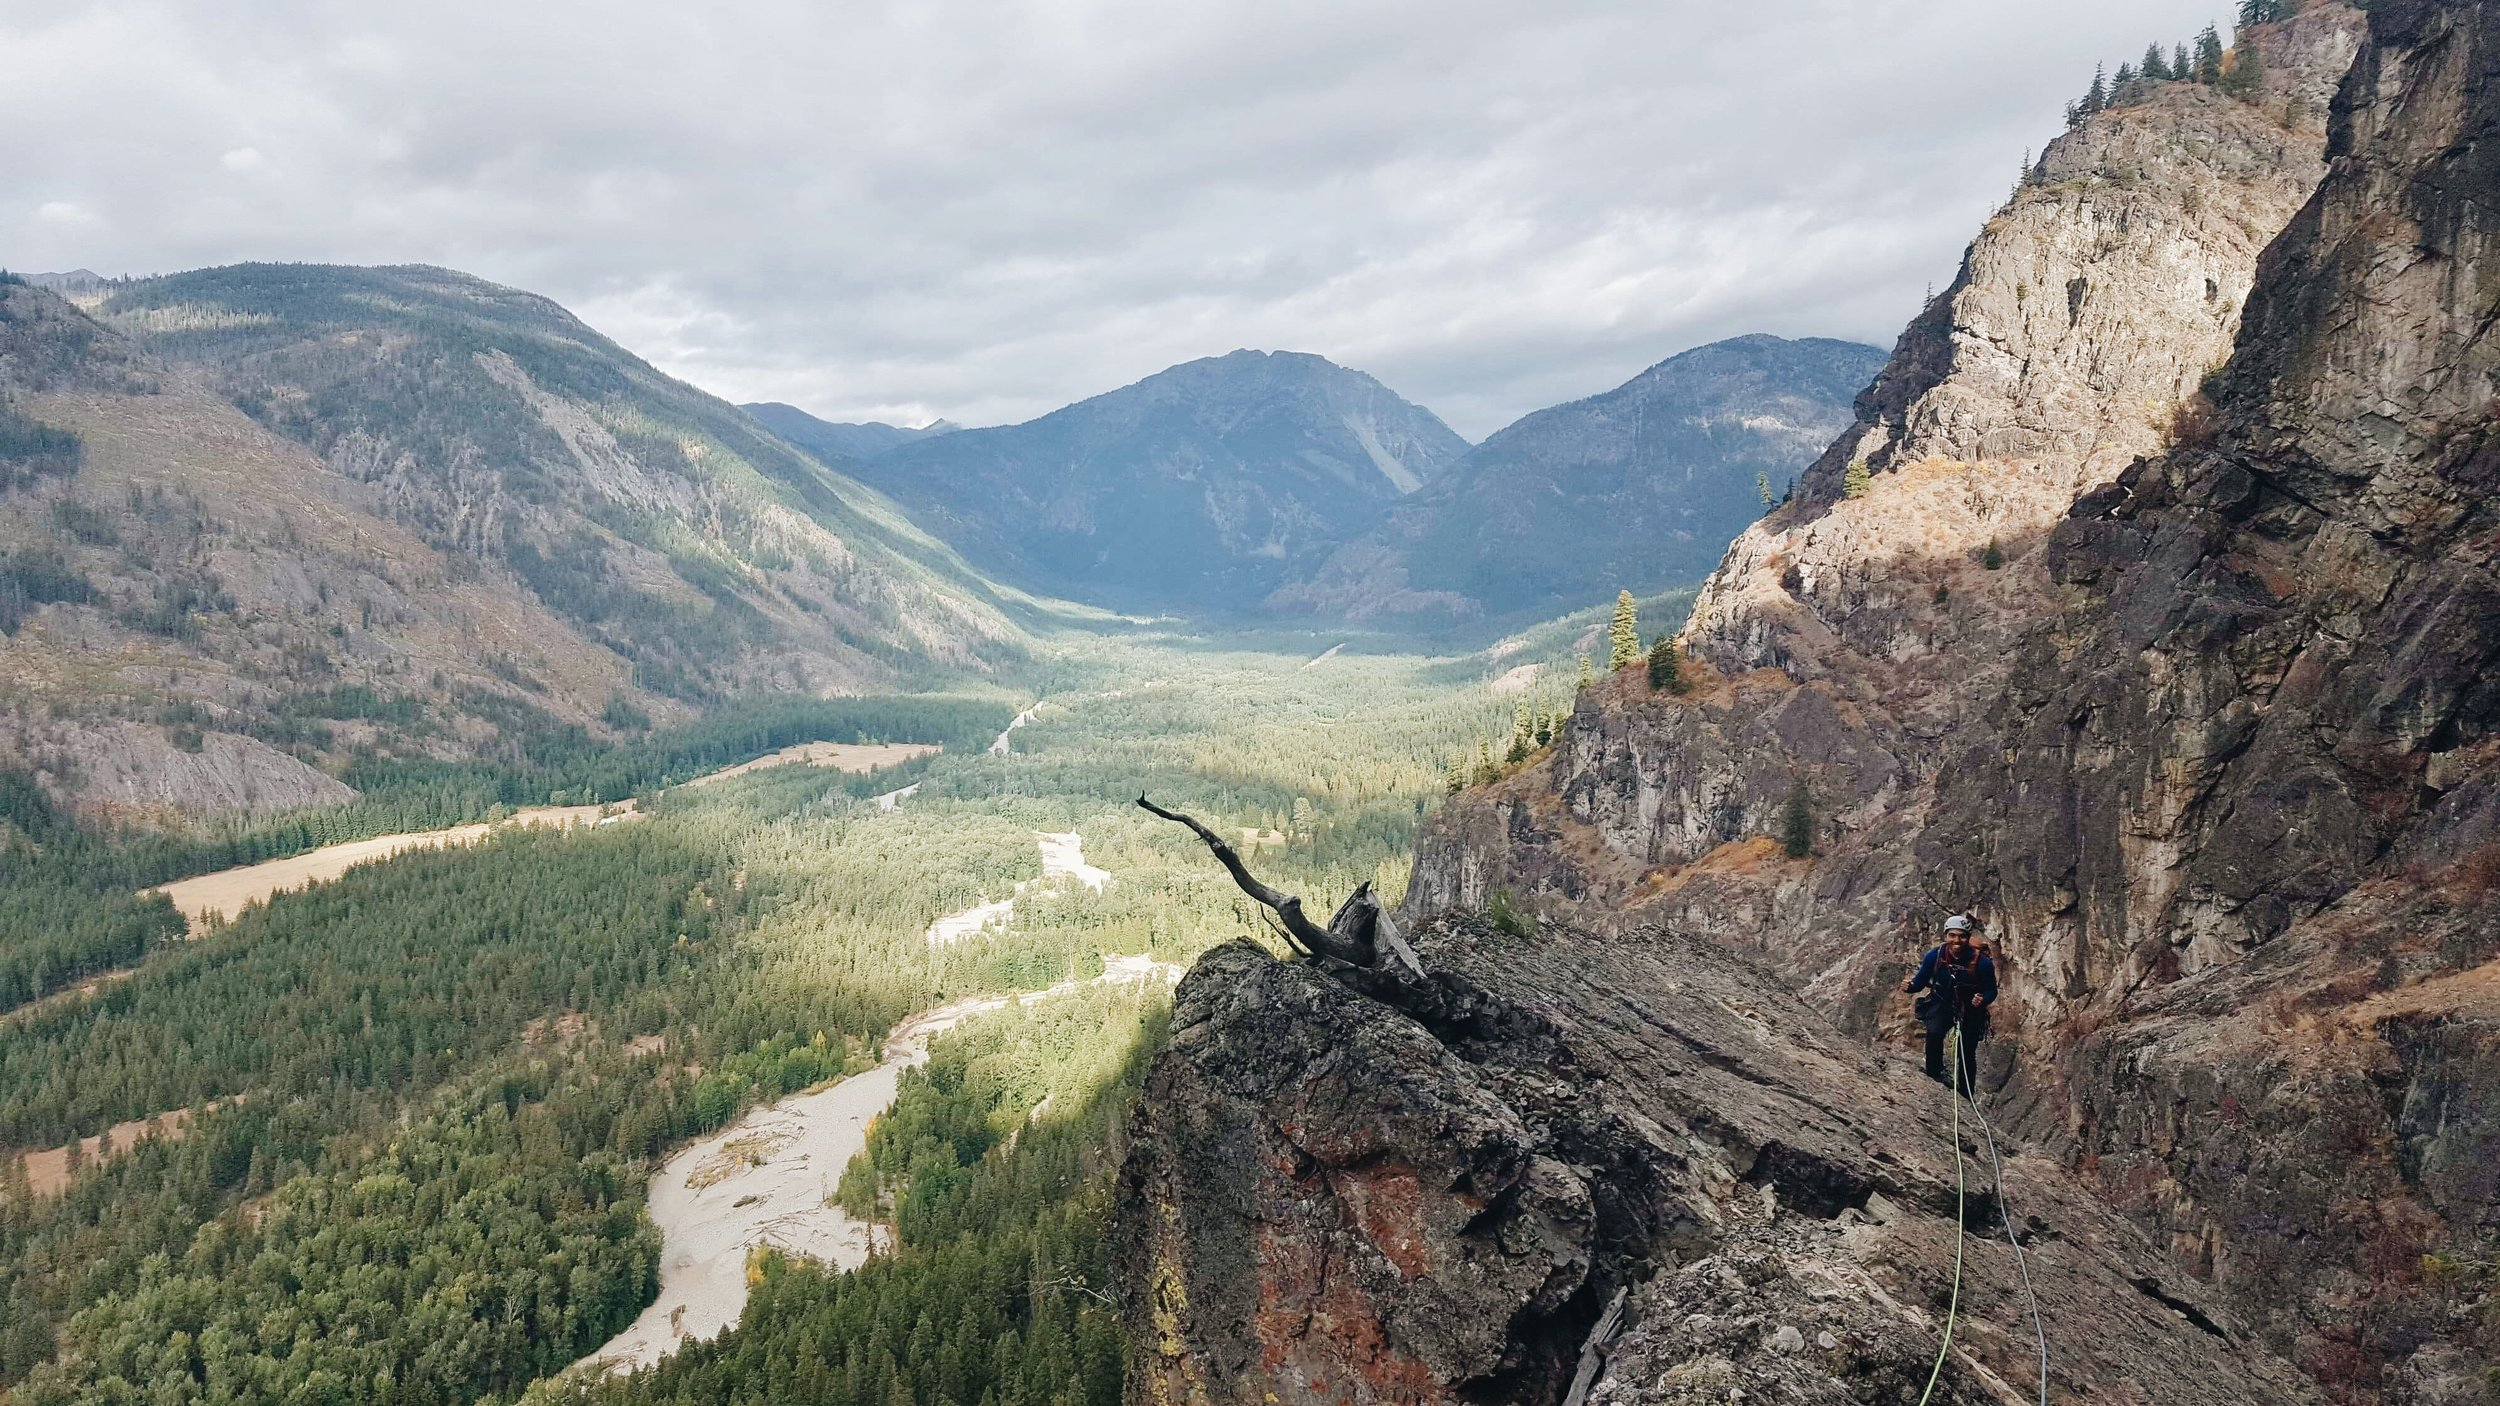 The author 400' feet up the route, after completing the airy traverse climbing in Mazama, WA.